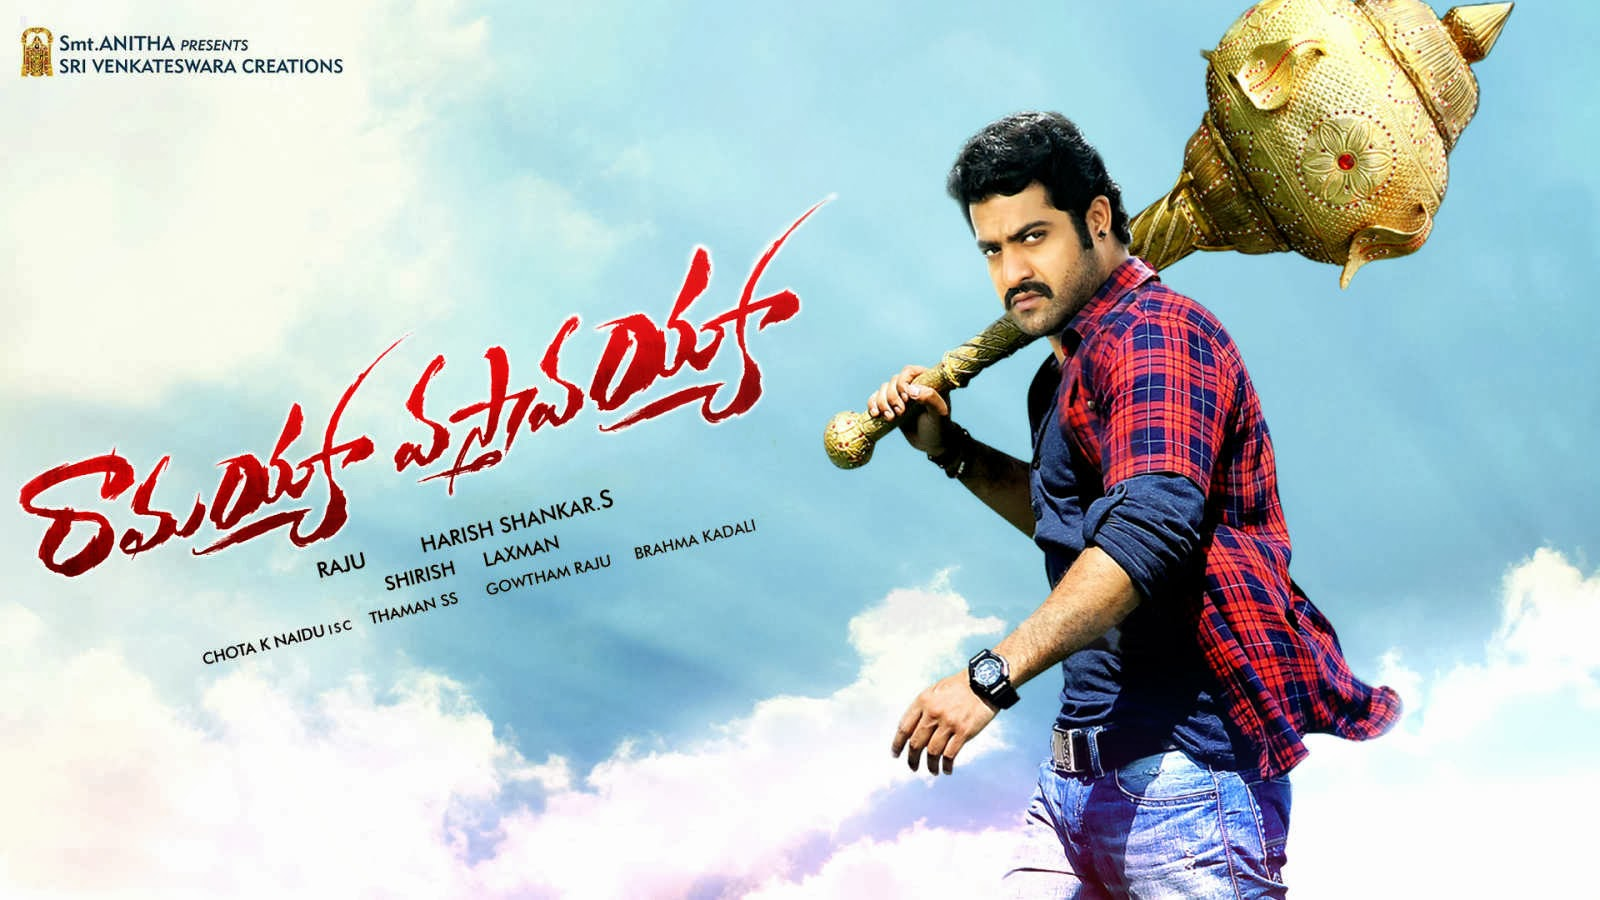 Ramaiya vastavaiya jr ntr (2013) telugu mp3 movie songs download.